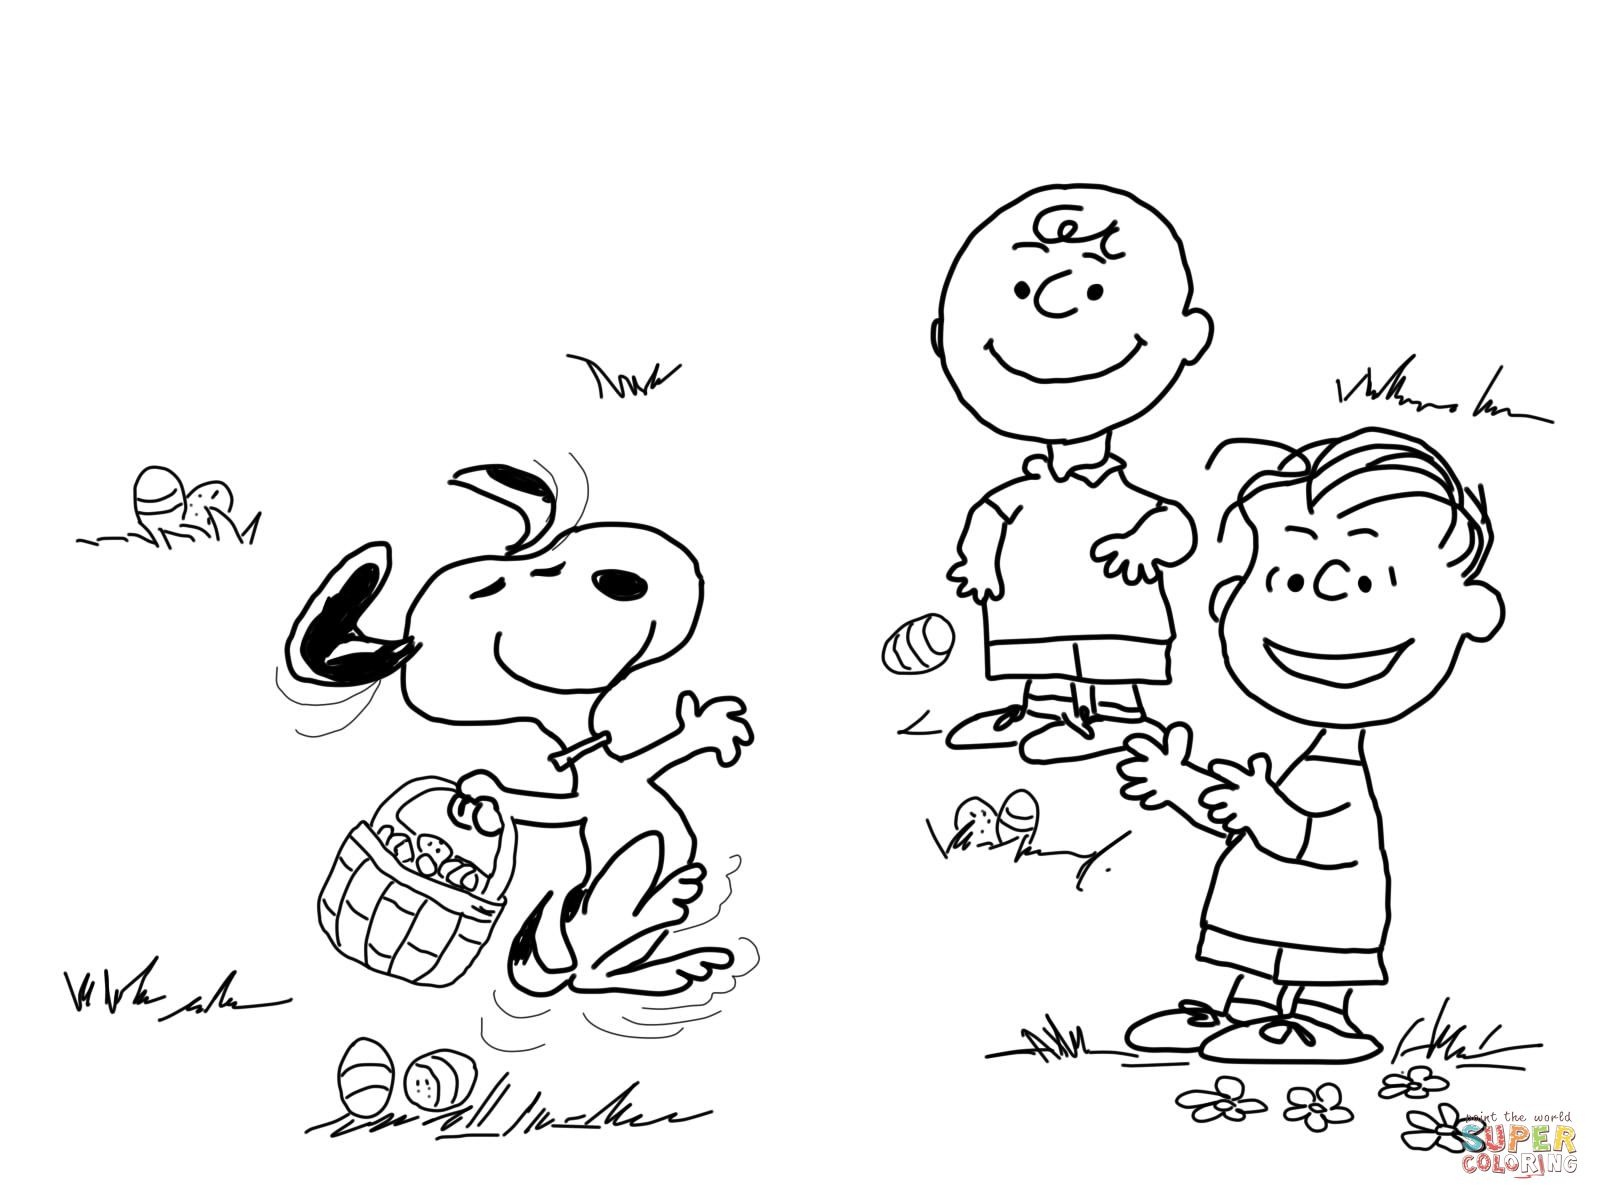 Pinaaron Mickelburough On Aaron   Easter Coloring Pages - Free Printable Charlie Brown Halloween Coloring Pages